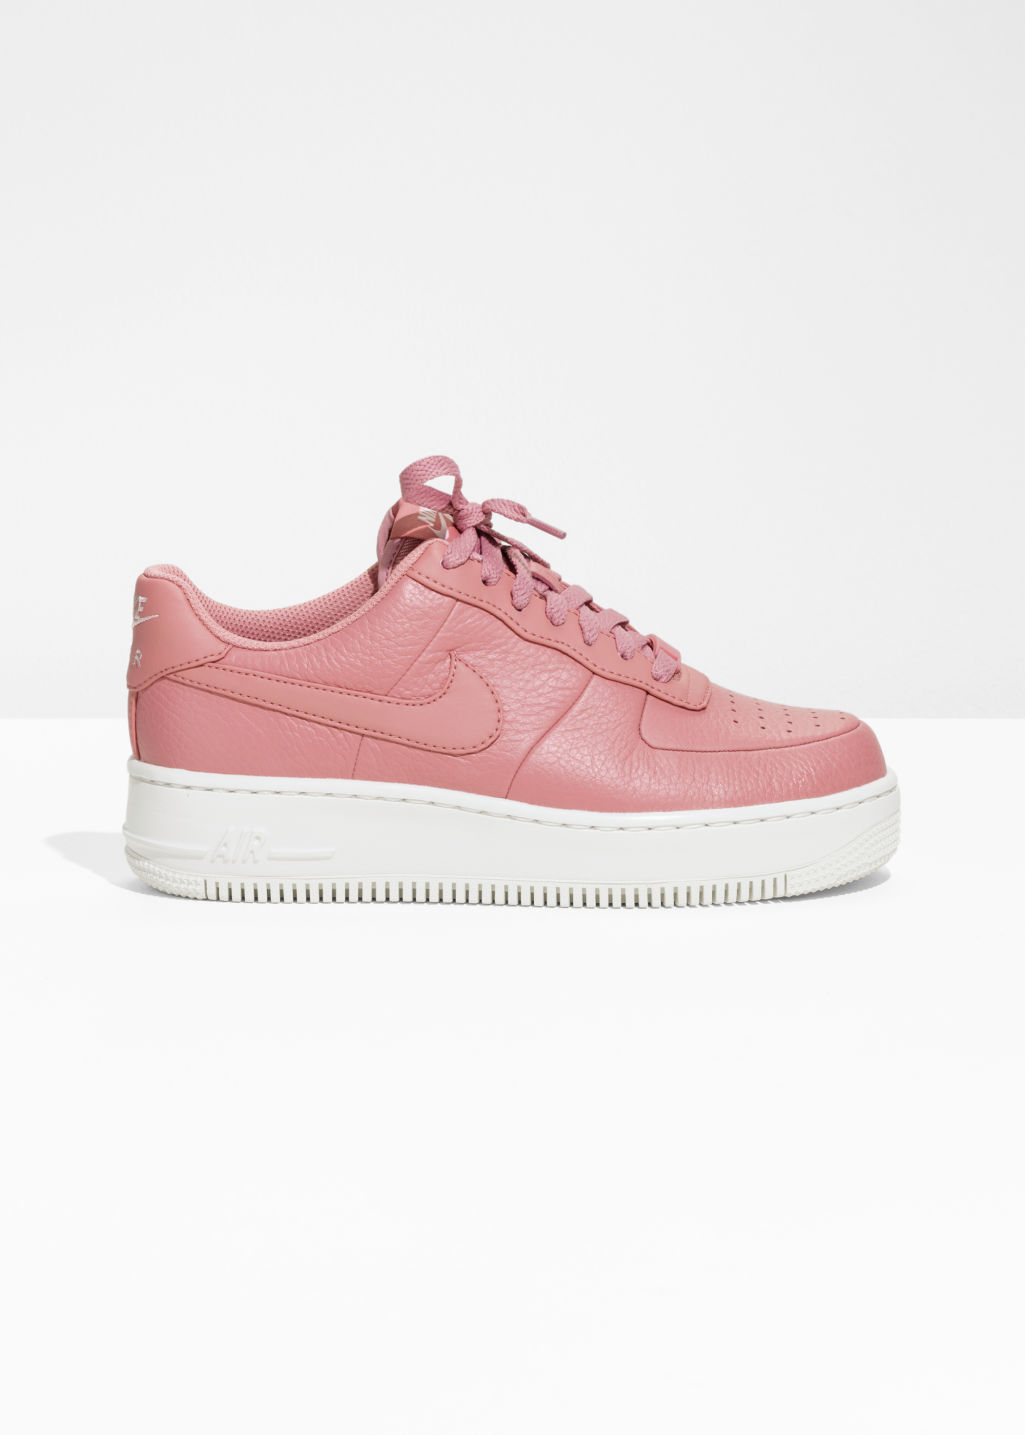 & OTHER STORIES Nike Air Force 1 Upstep